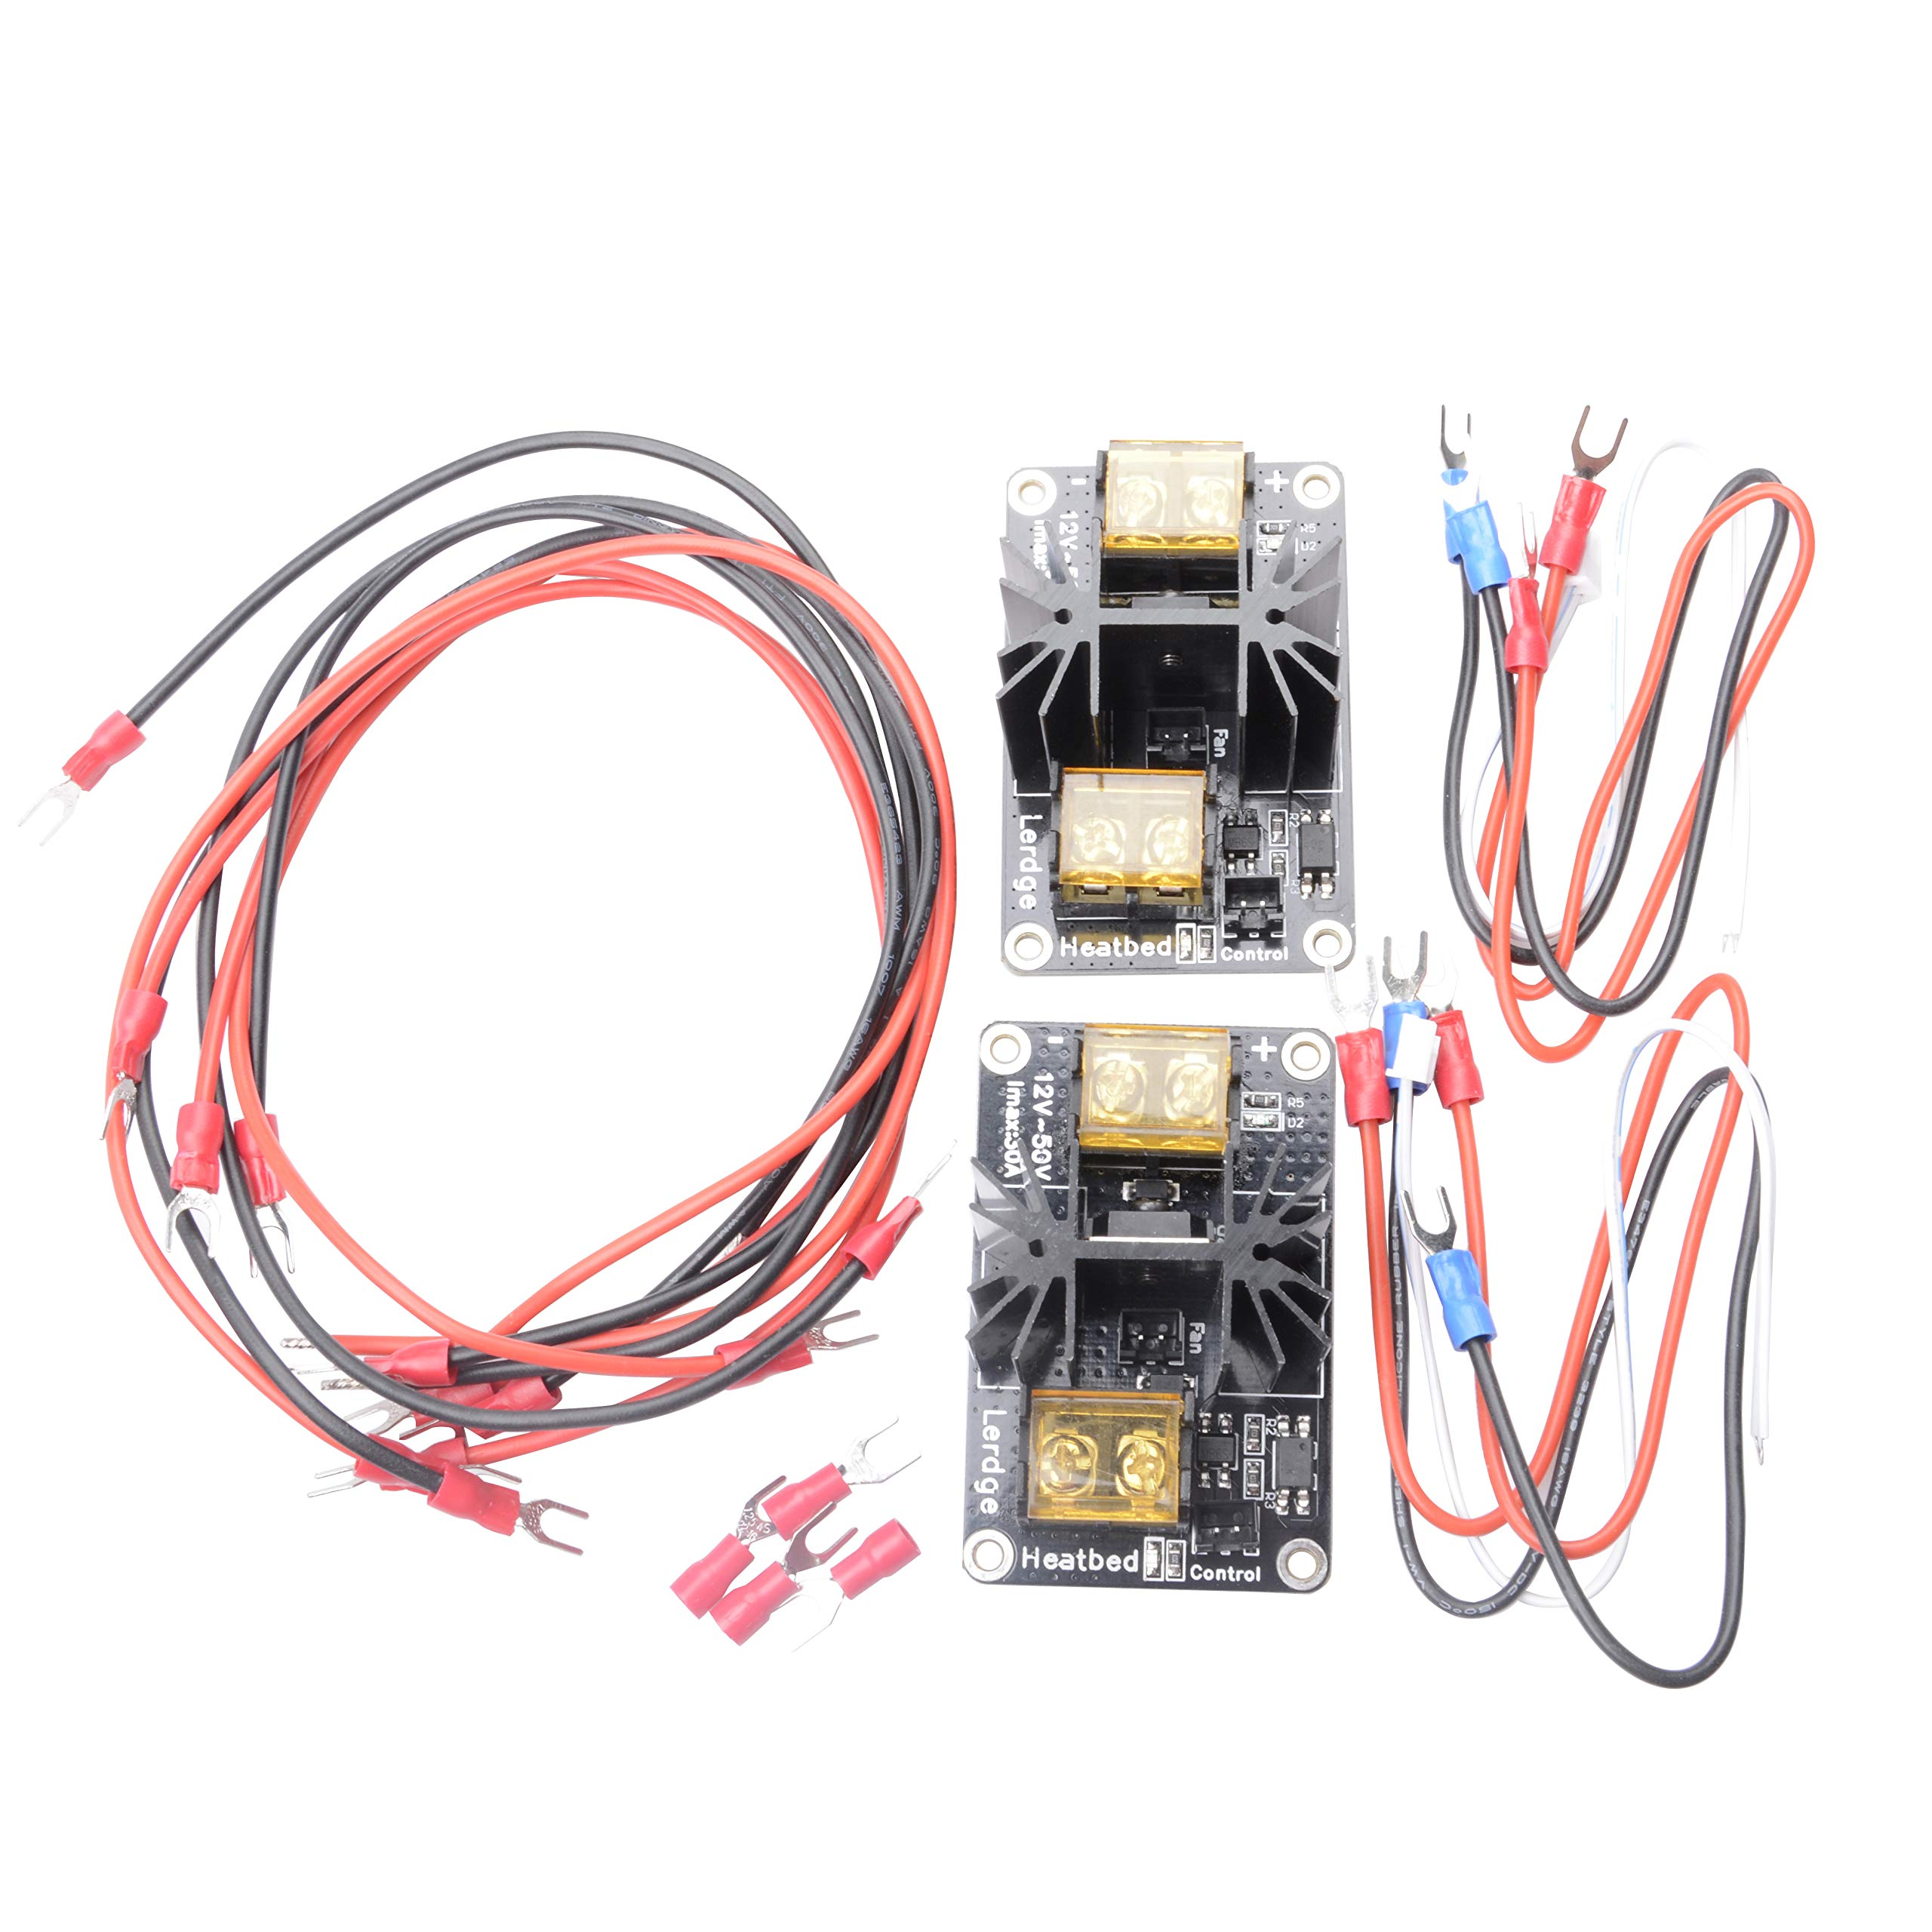 Qunqi 2Pcs 30A Add-on Heat Bed Power Module Expansion Board Mos Tube Hotend Replacement with Cables for 3D Printer